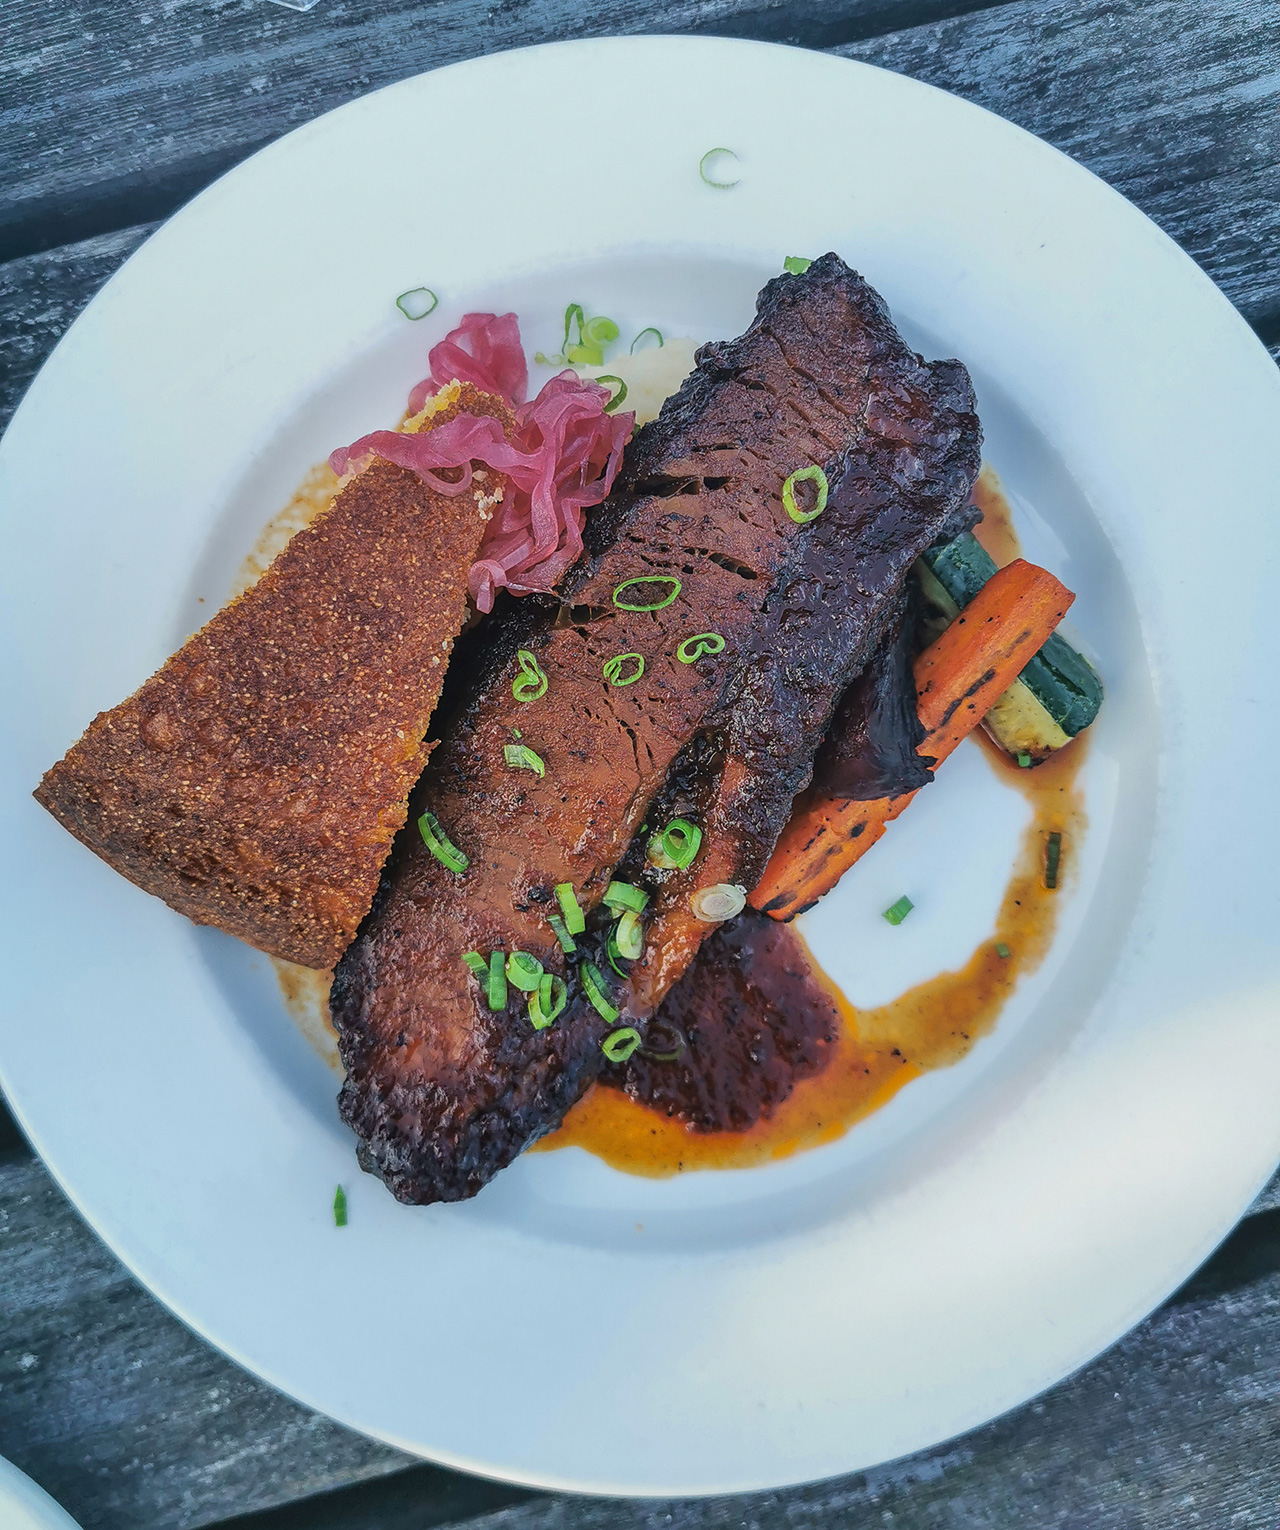 Extremely flavourful beef brisket.